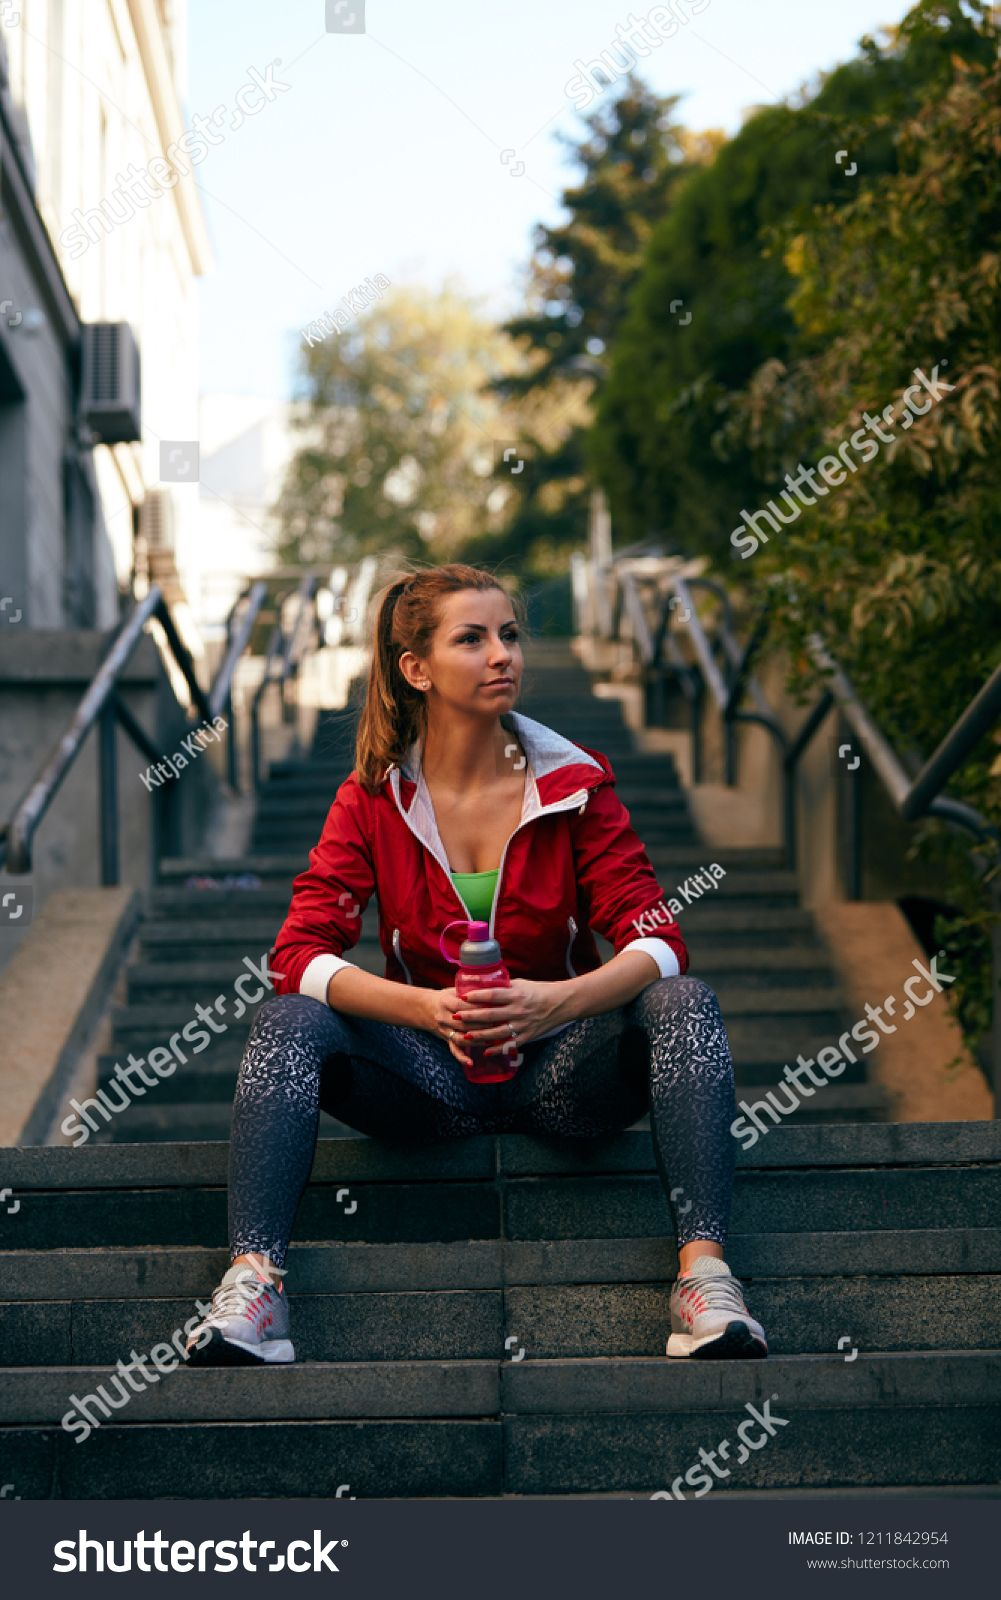 Fitness woman taking a break after workout. #Ad , #Aff, #woman#Fitness#workout#break